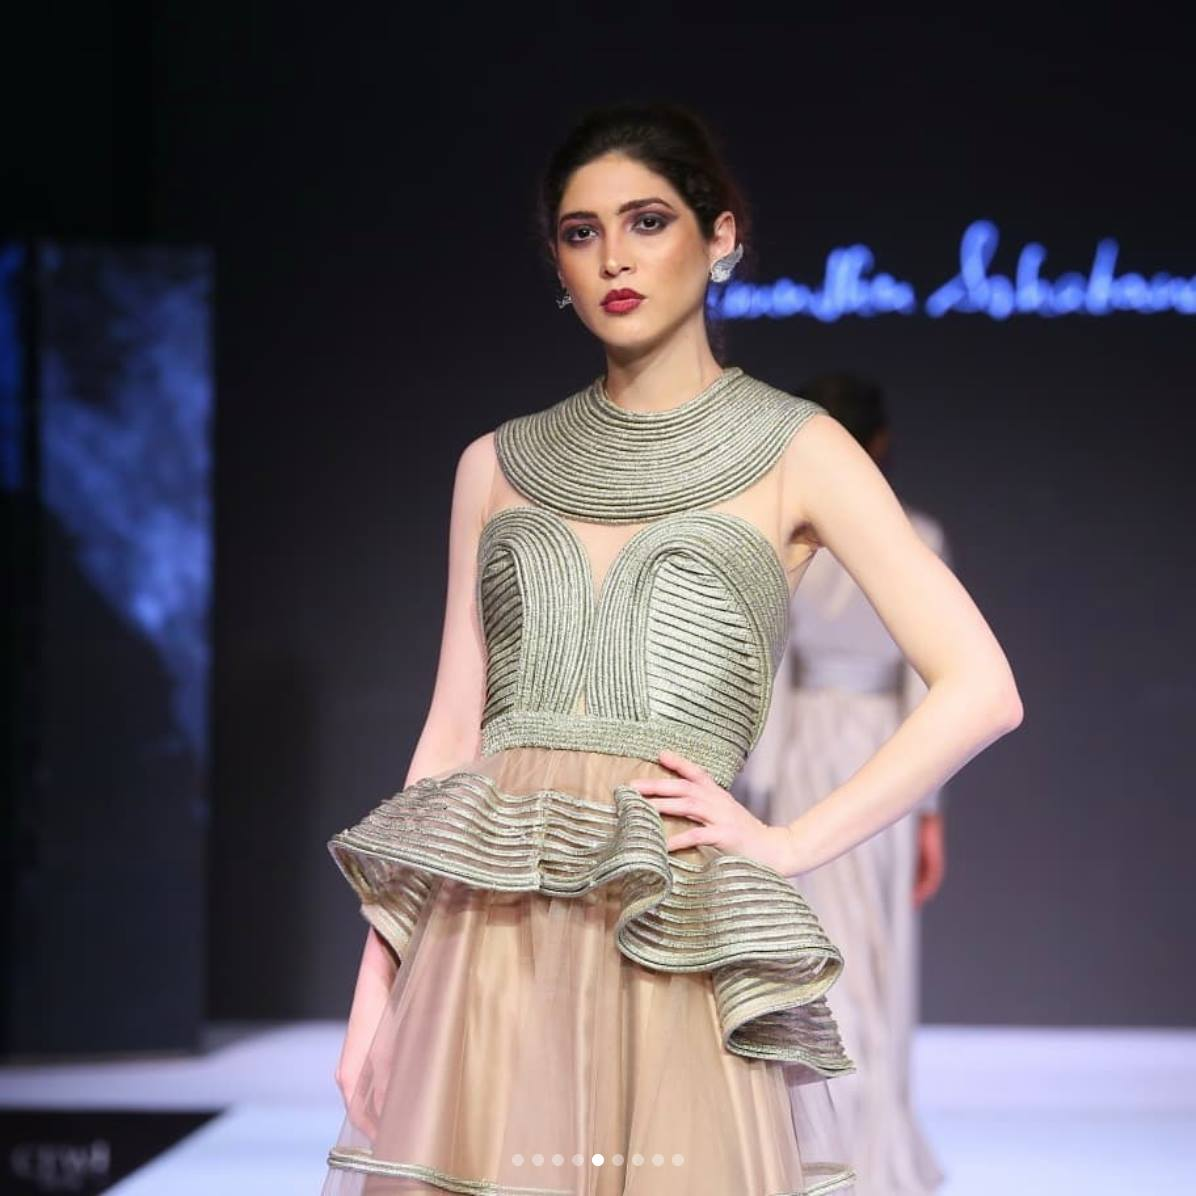 Colombo shopping guide - designer fashion by Dimuthu Sahabandhu at The Design Collective